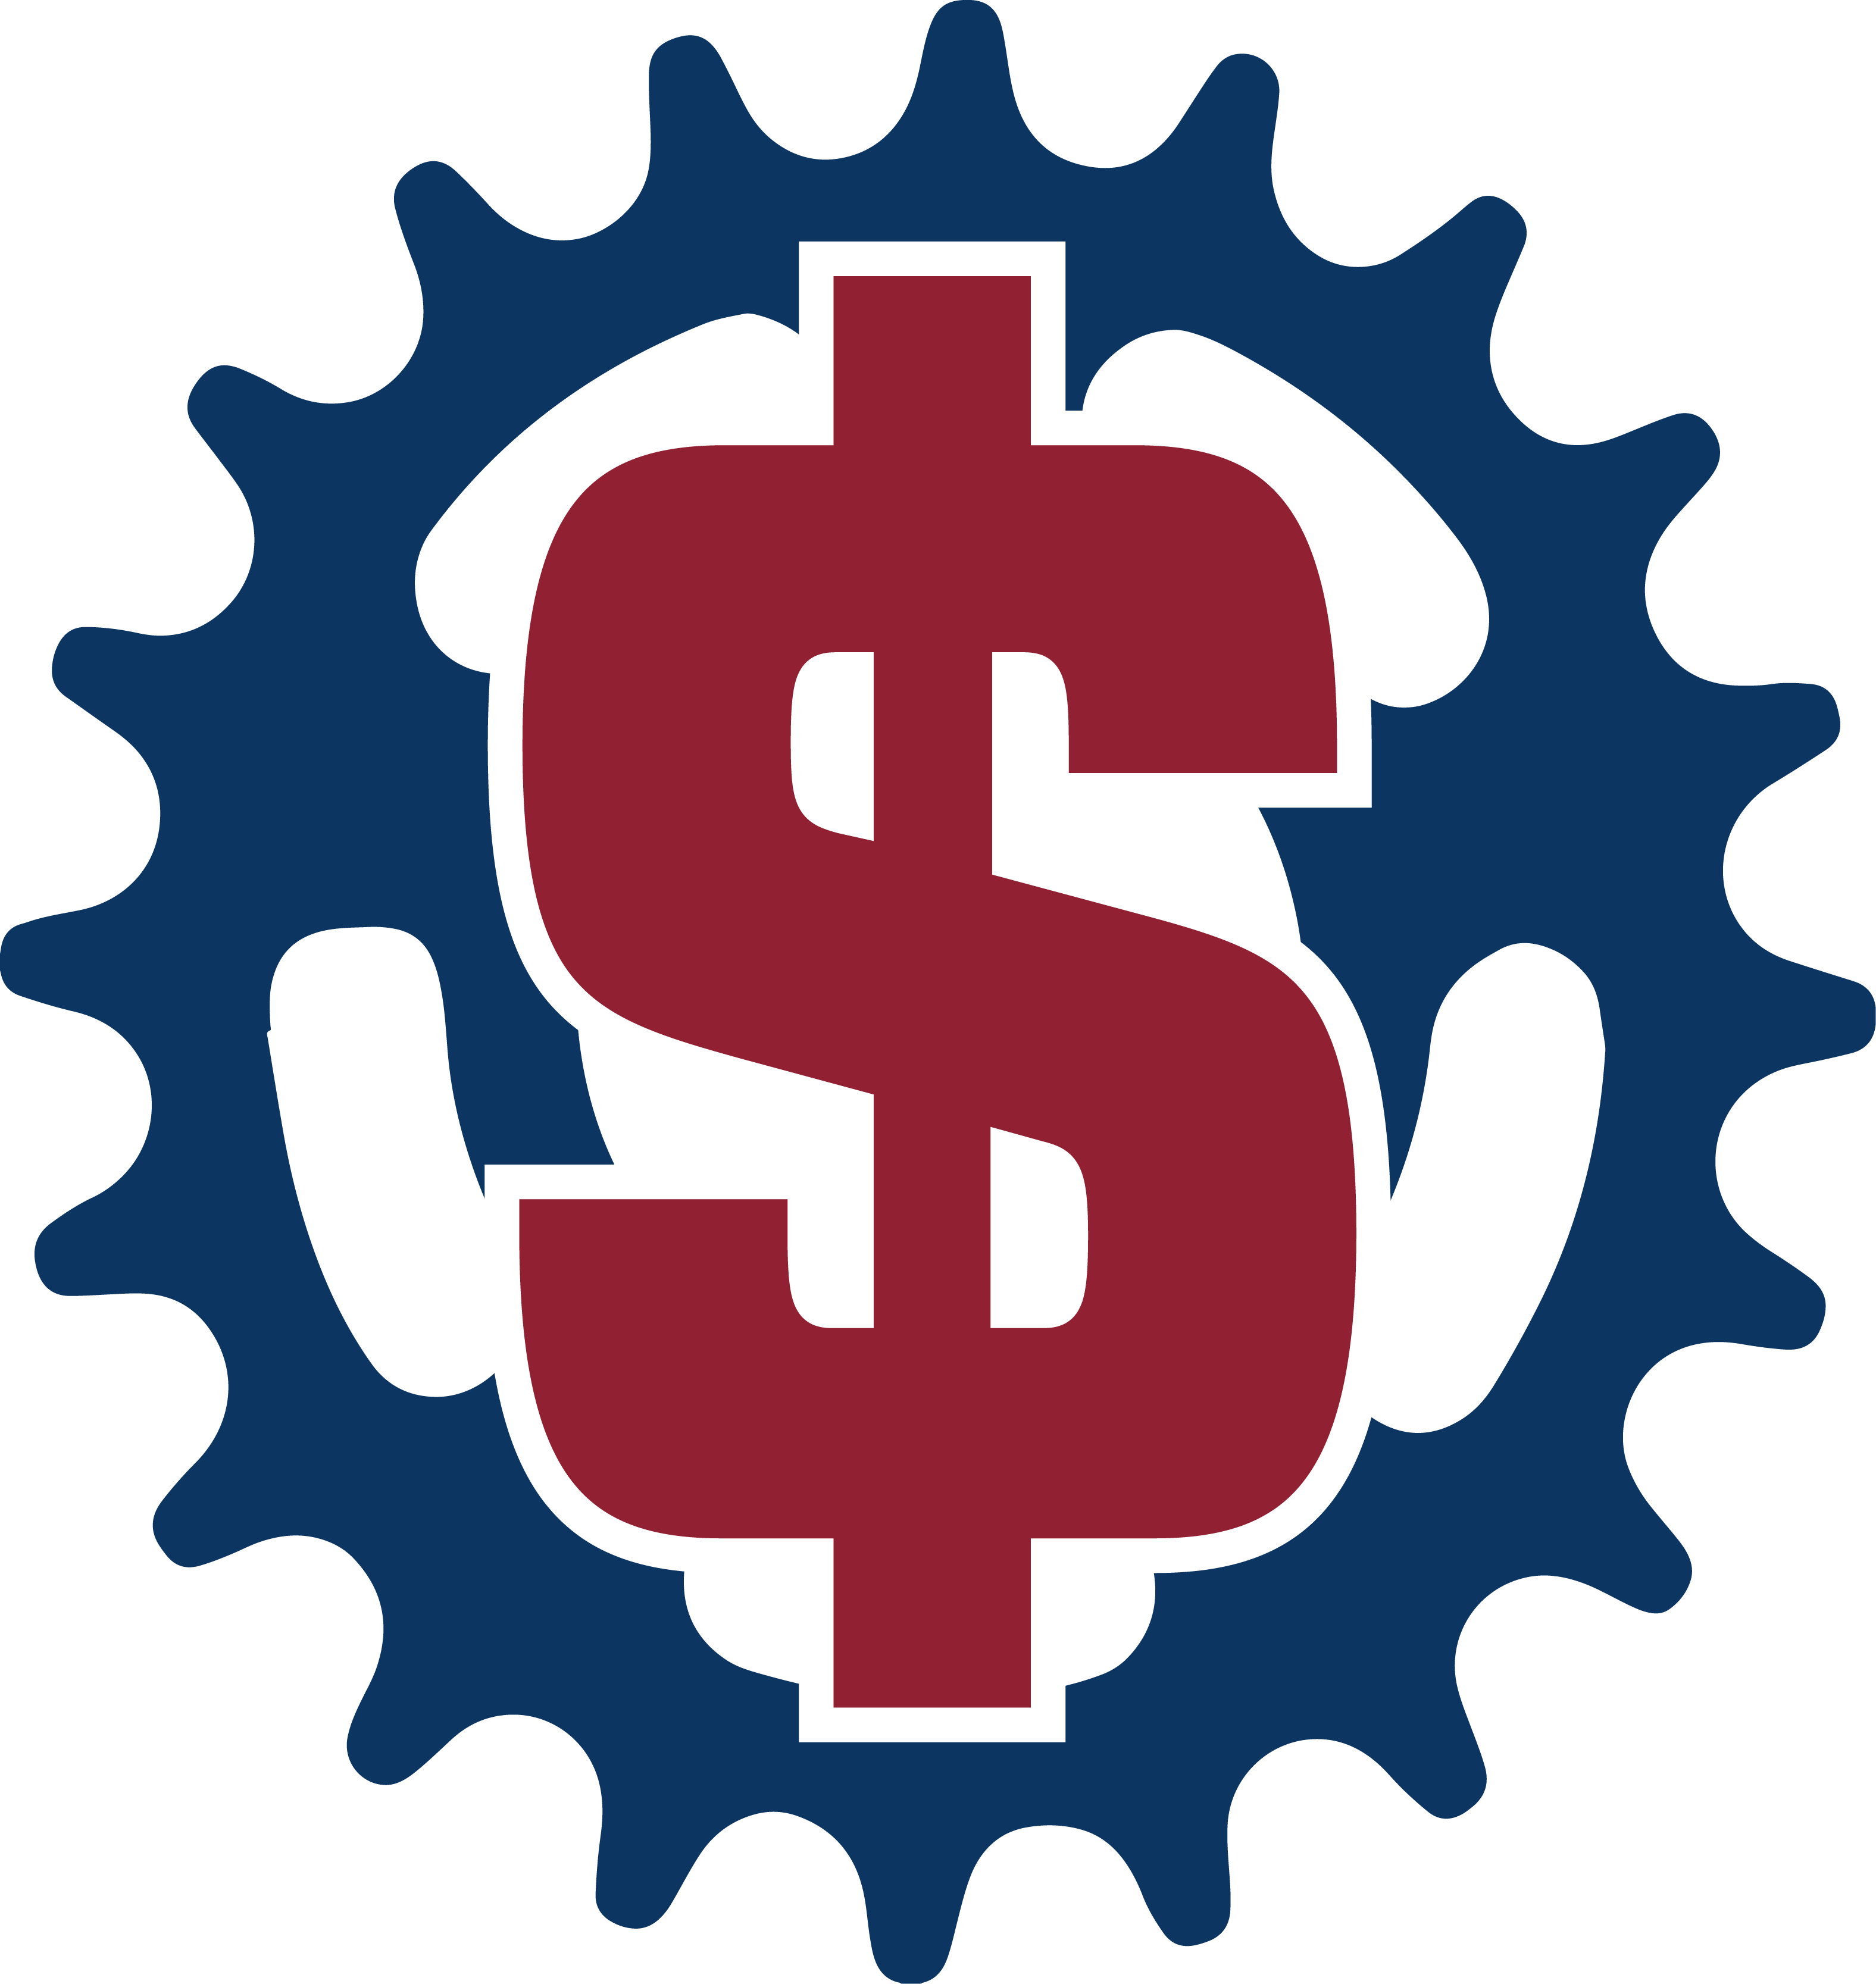 Dollar Sign that represents our cost-effectiveness. We are able to provide you cost effective solutions because we are self-sufficient.